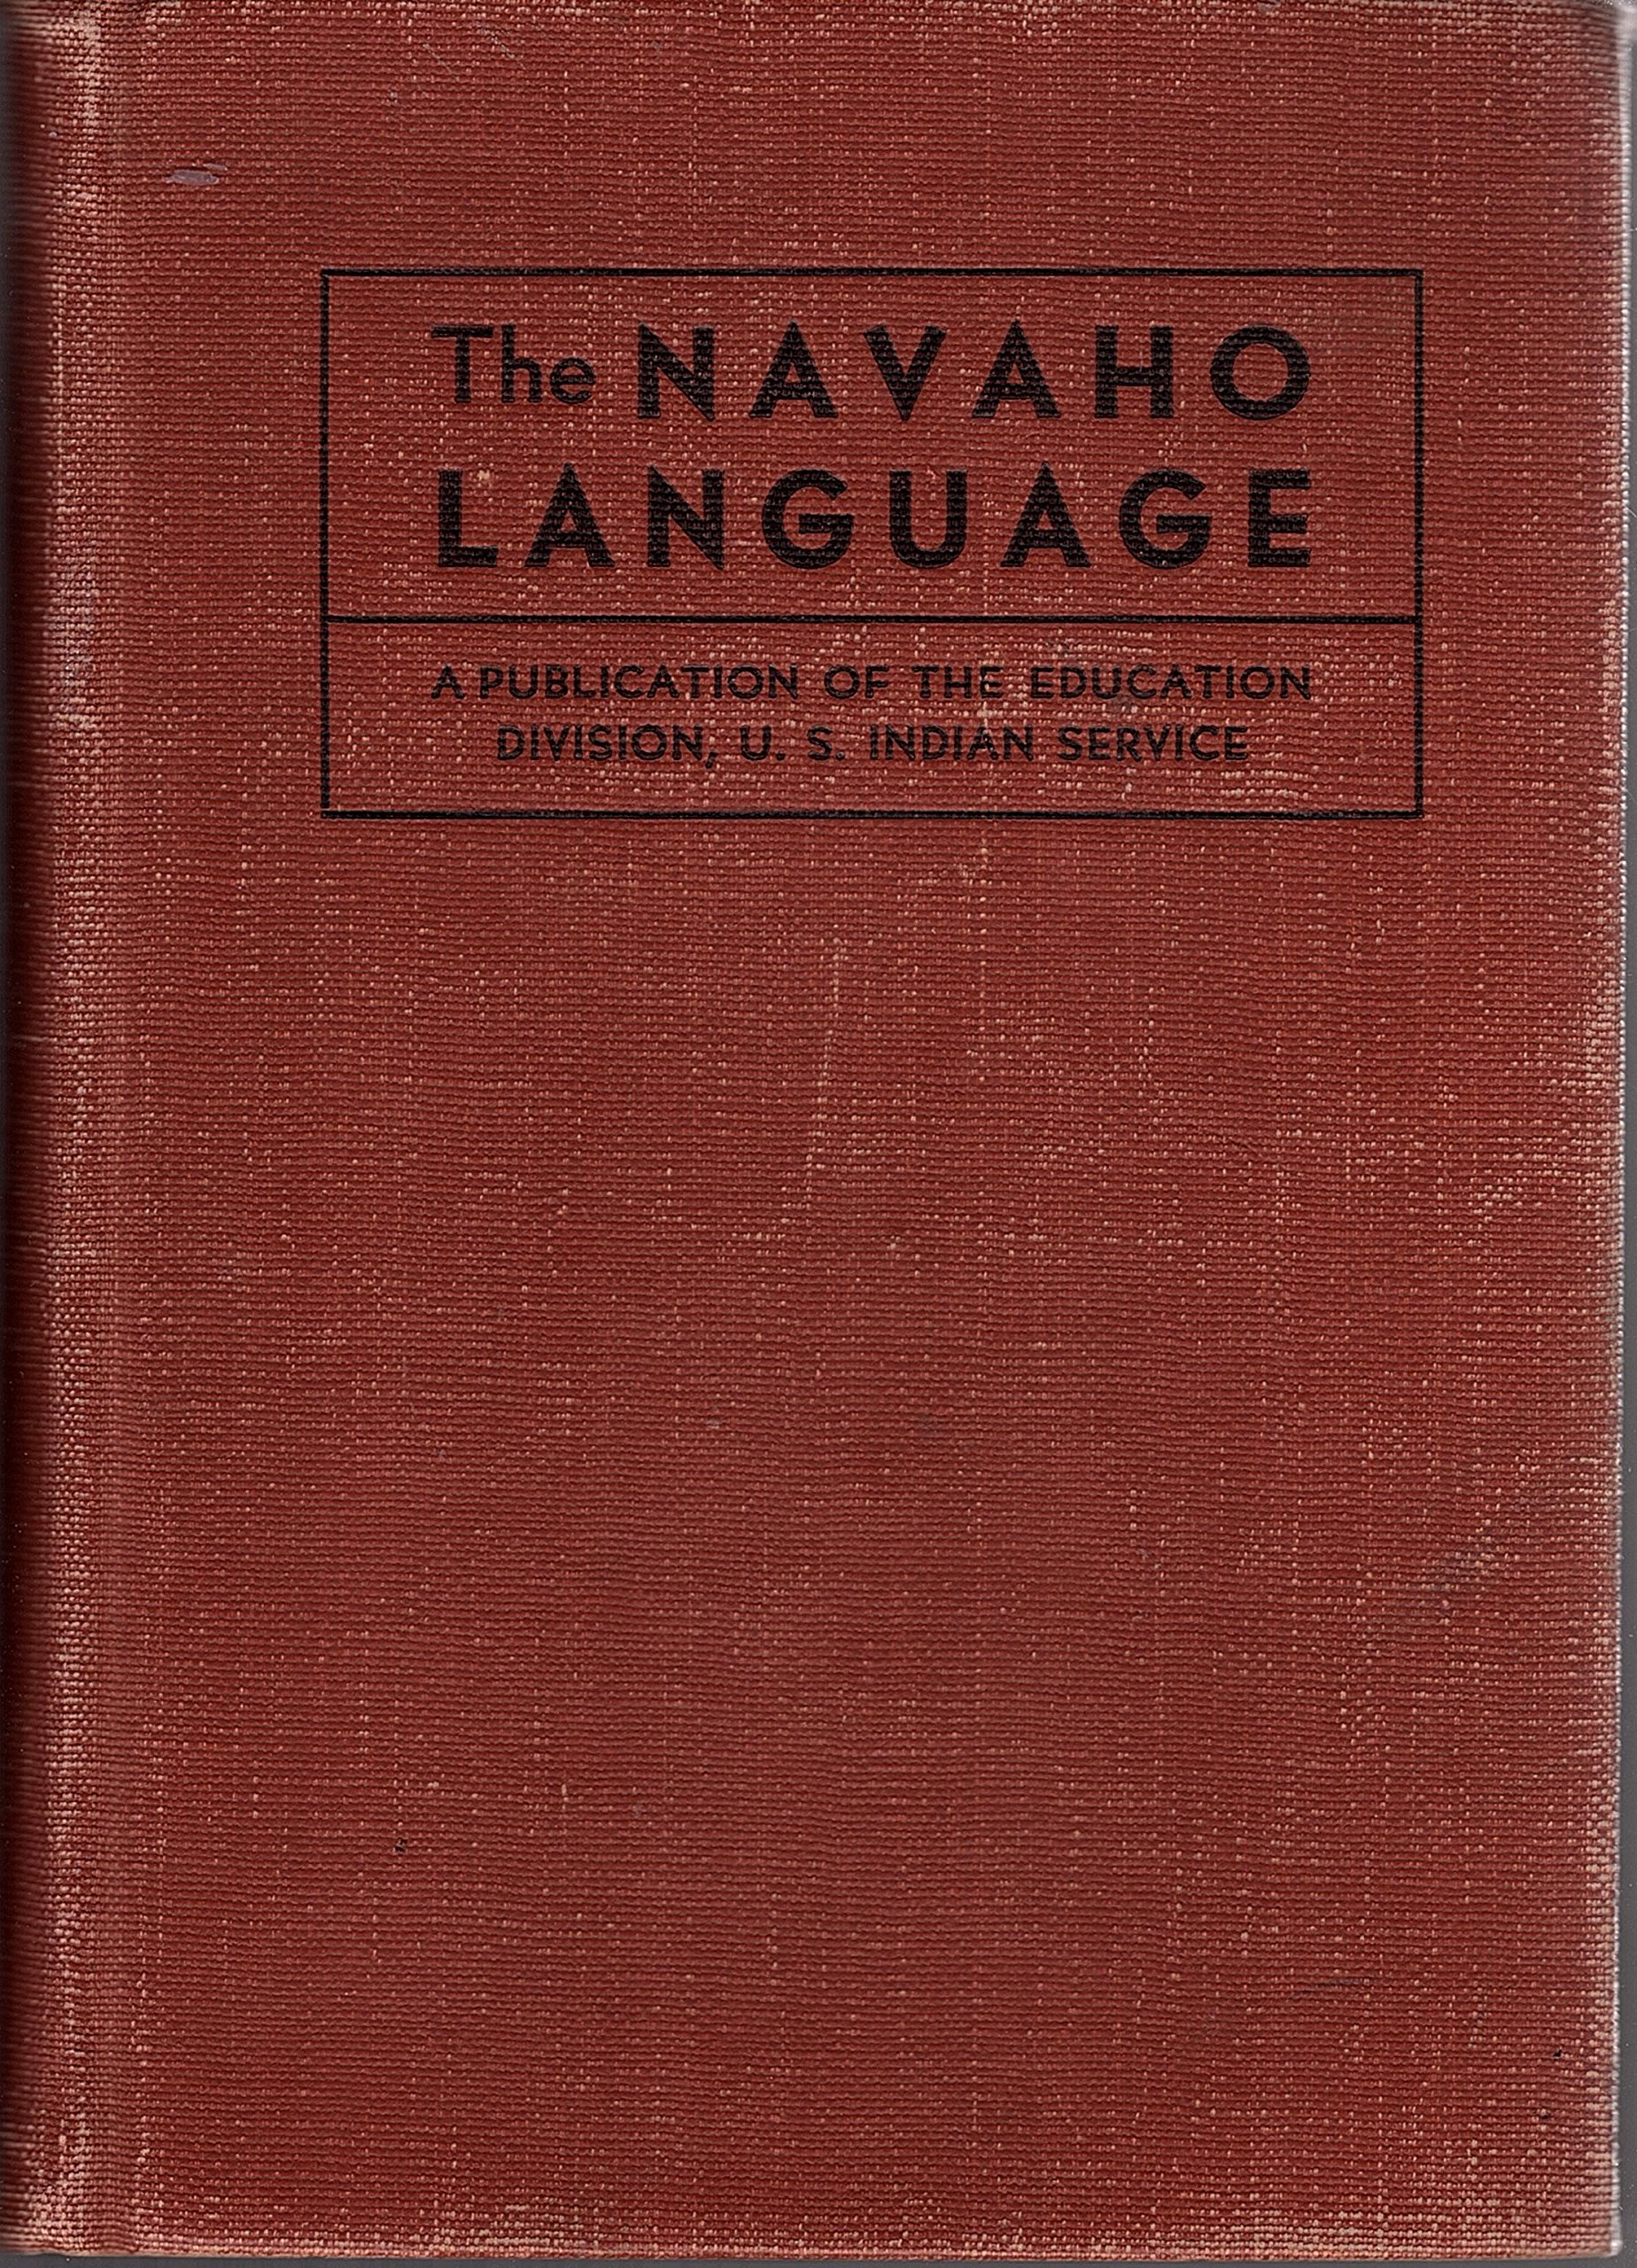 A vocabulary of the Navaho language